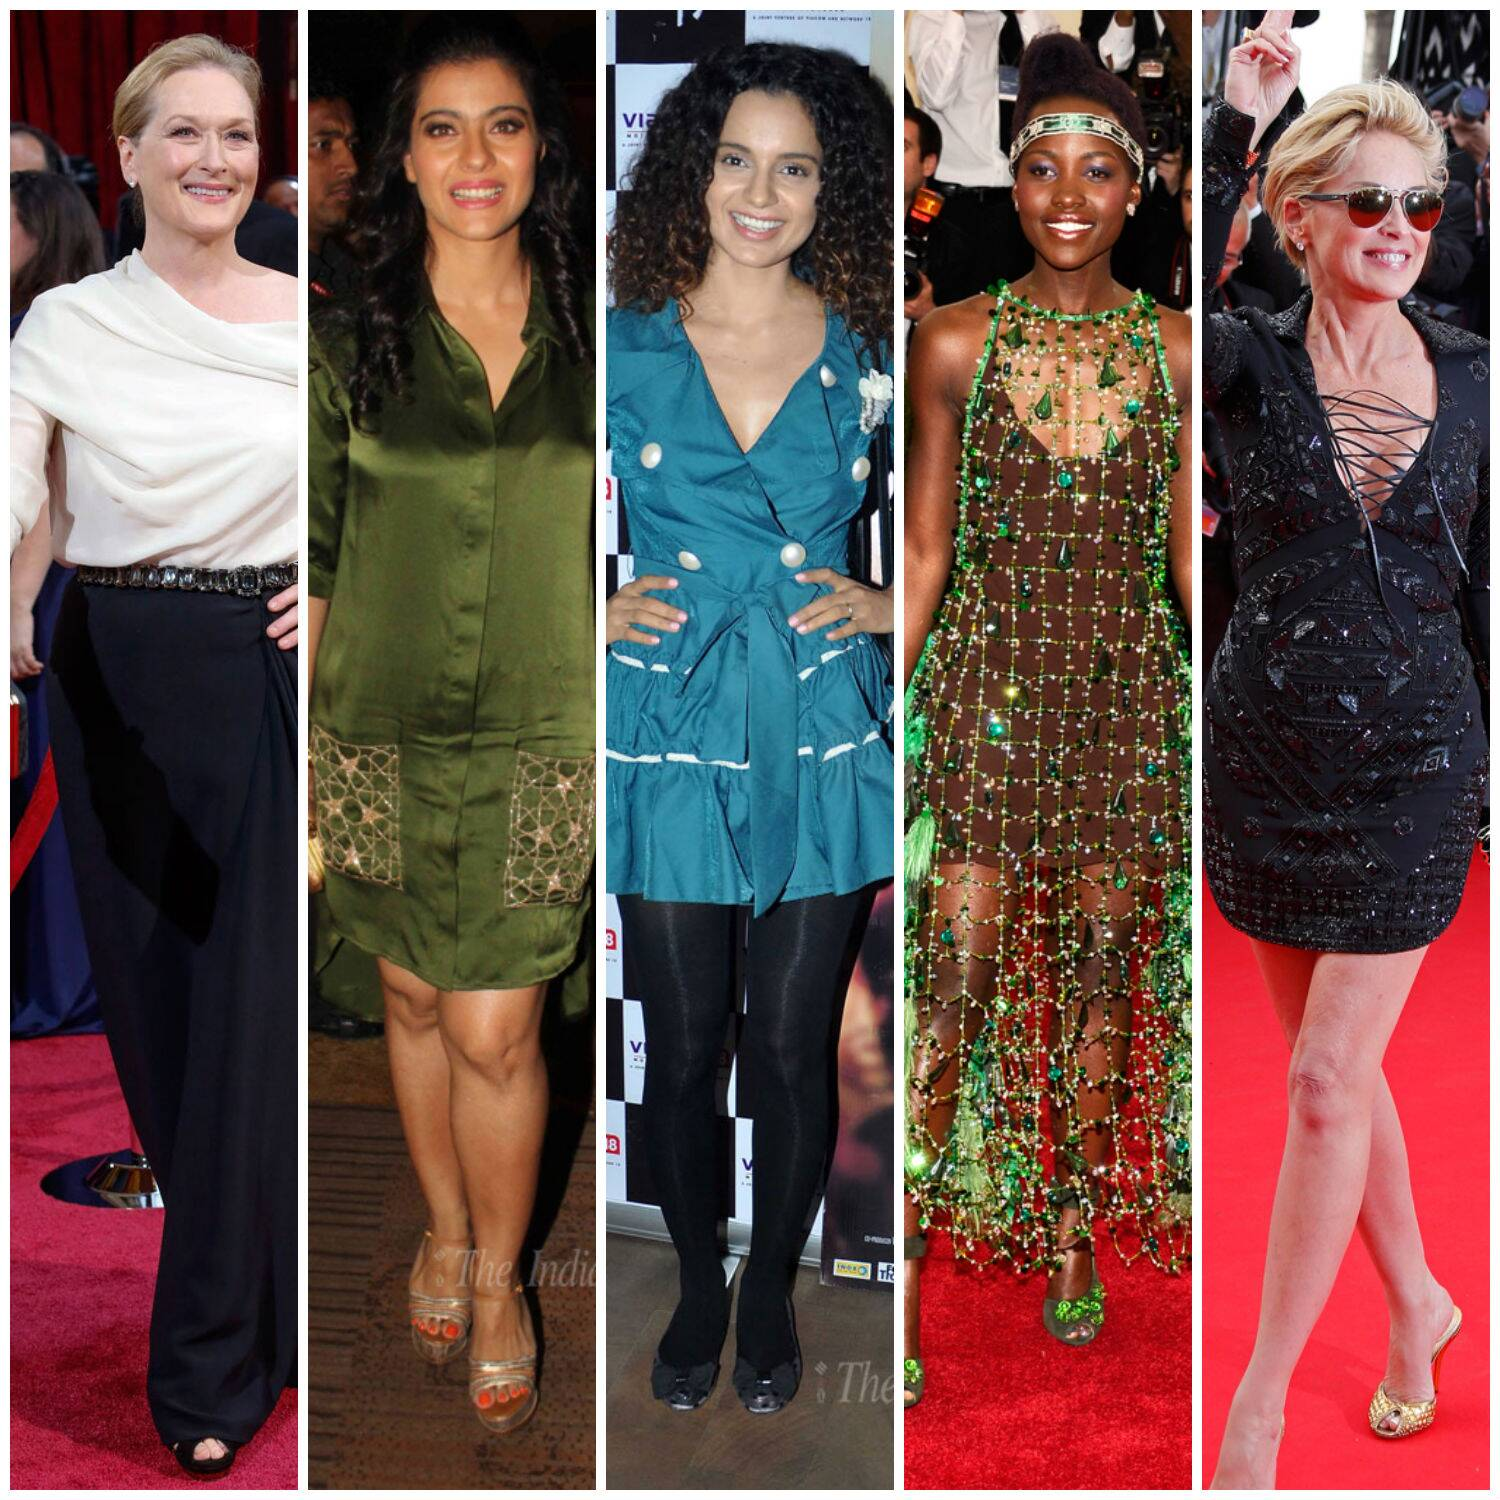 While we've all 'ooed and aahed' at the Best Dressed women this year, let's spare a thought to those who didn't get it quite right this 2014. Here's a look at some of the worst dressed actresses this year.